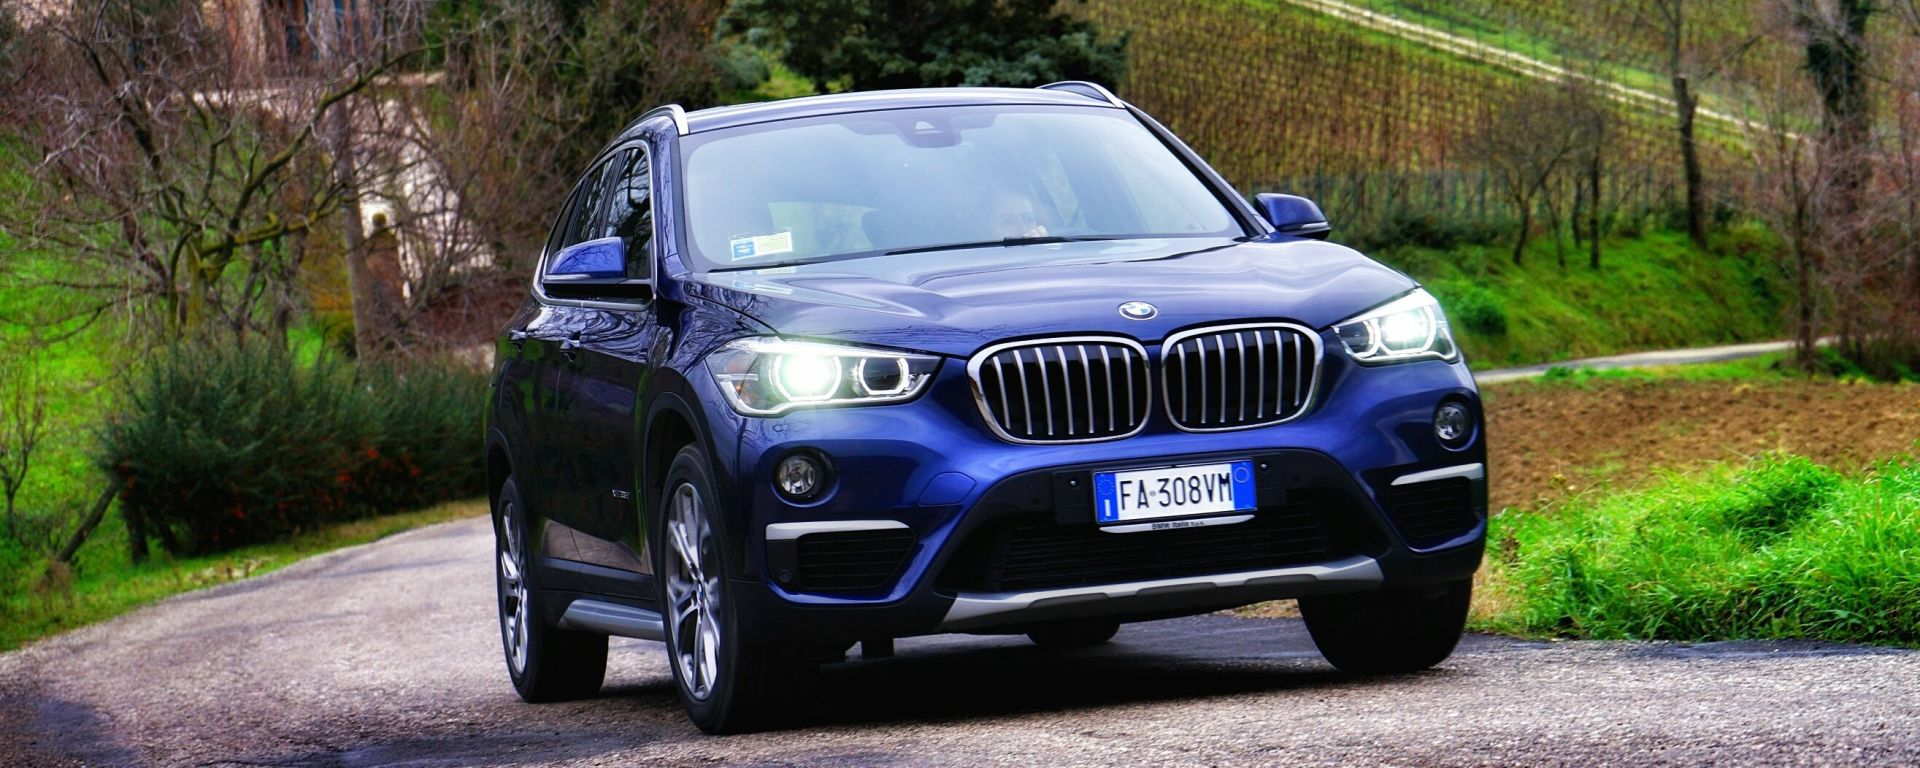 prova su strada bmw x1 xdrive 25d sport motorbox. Black Bedroom Furniture Sets. Home Design Ideas